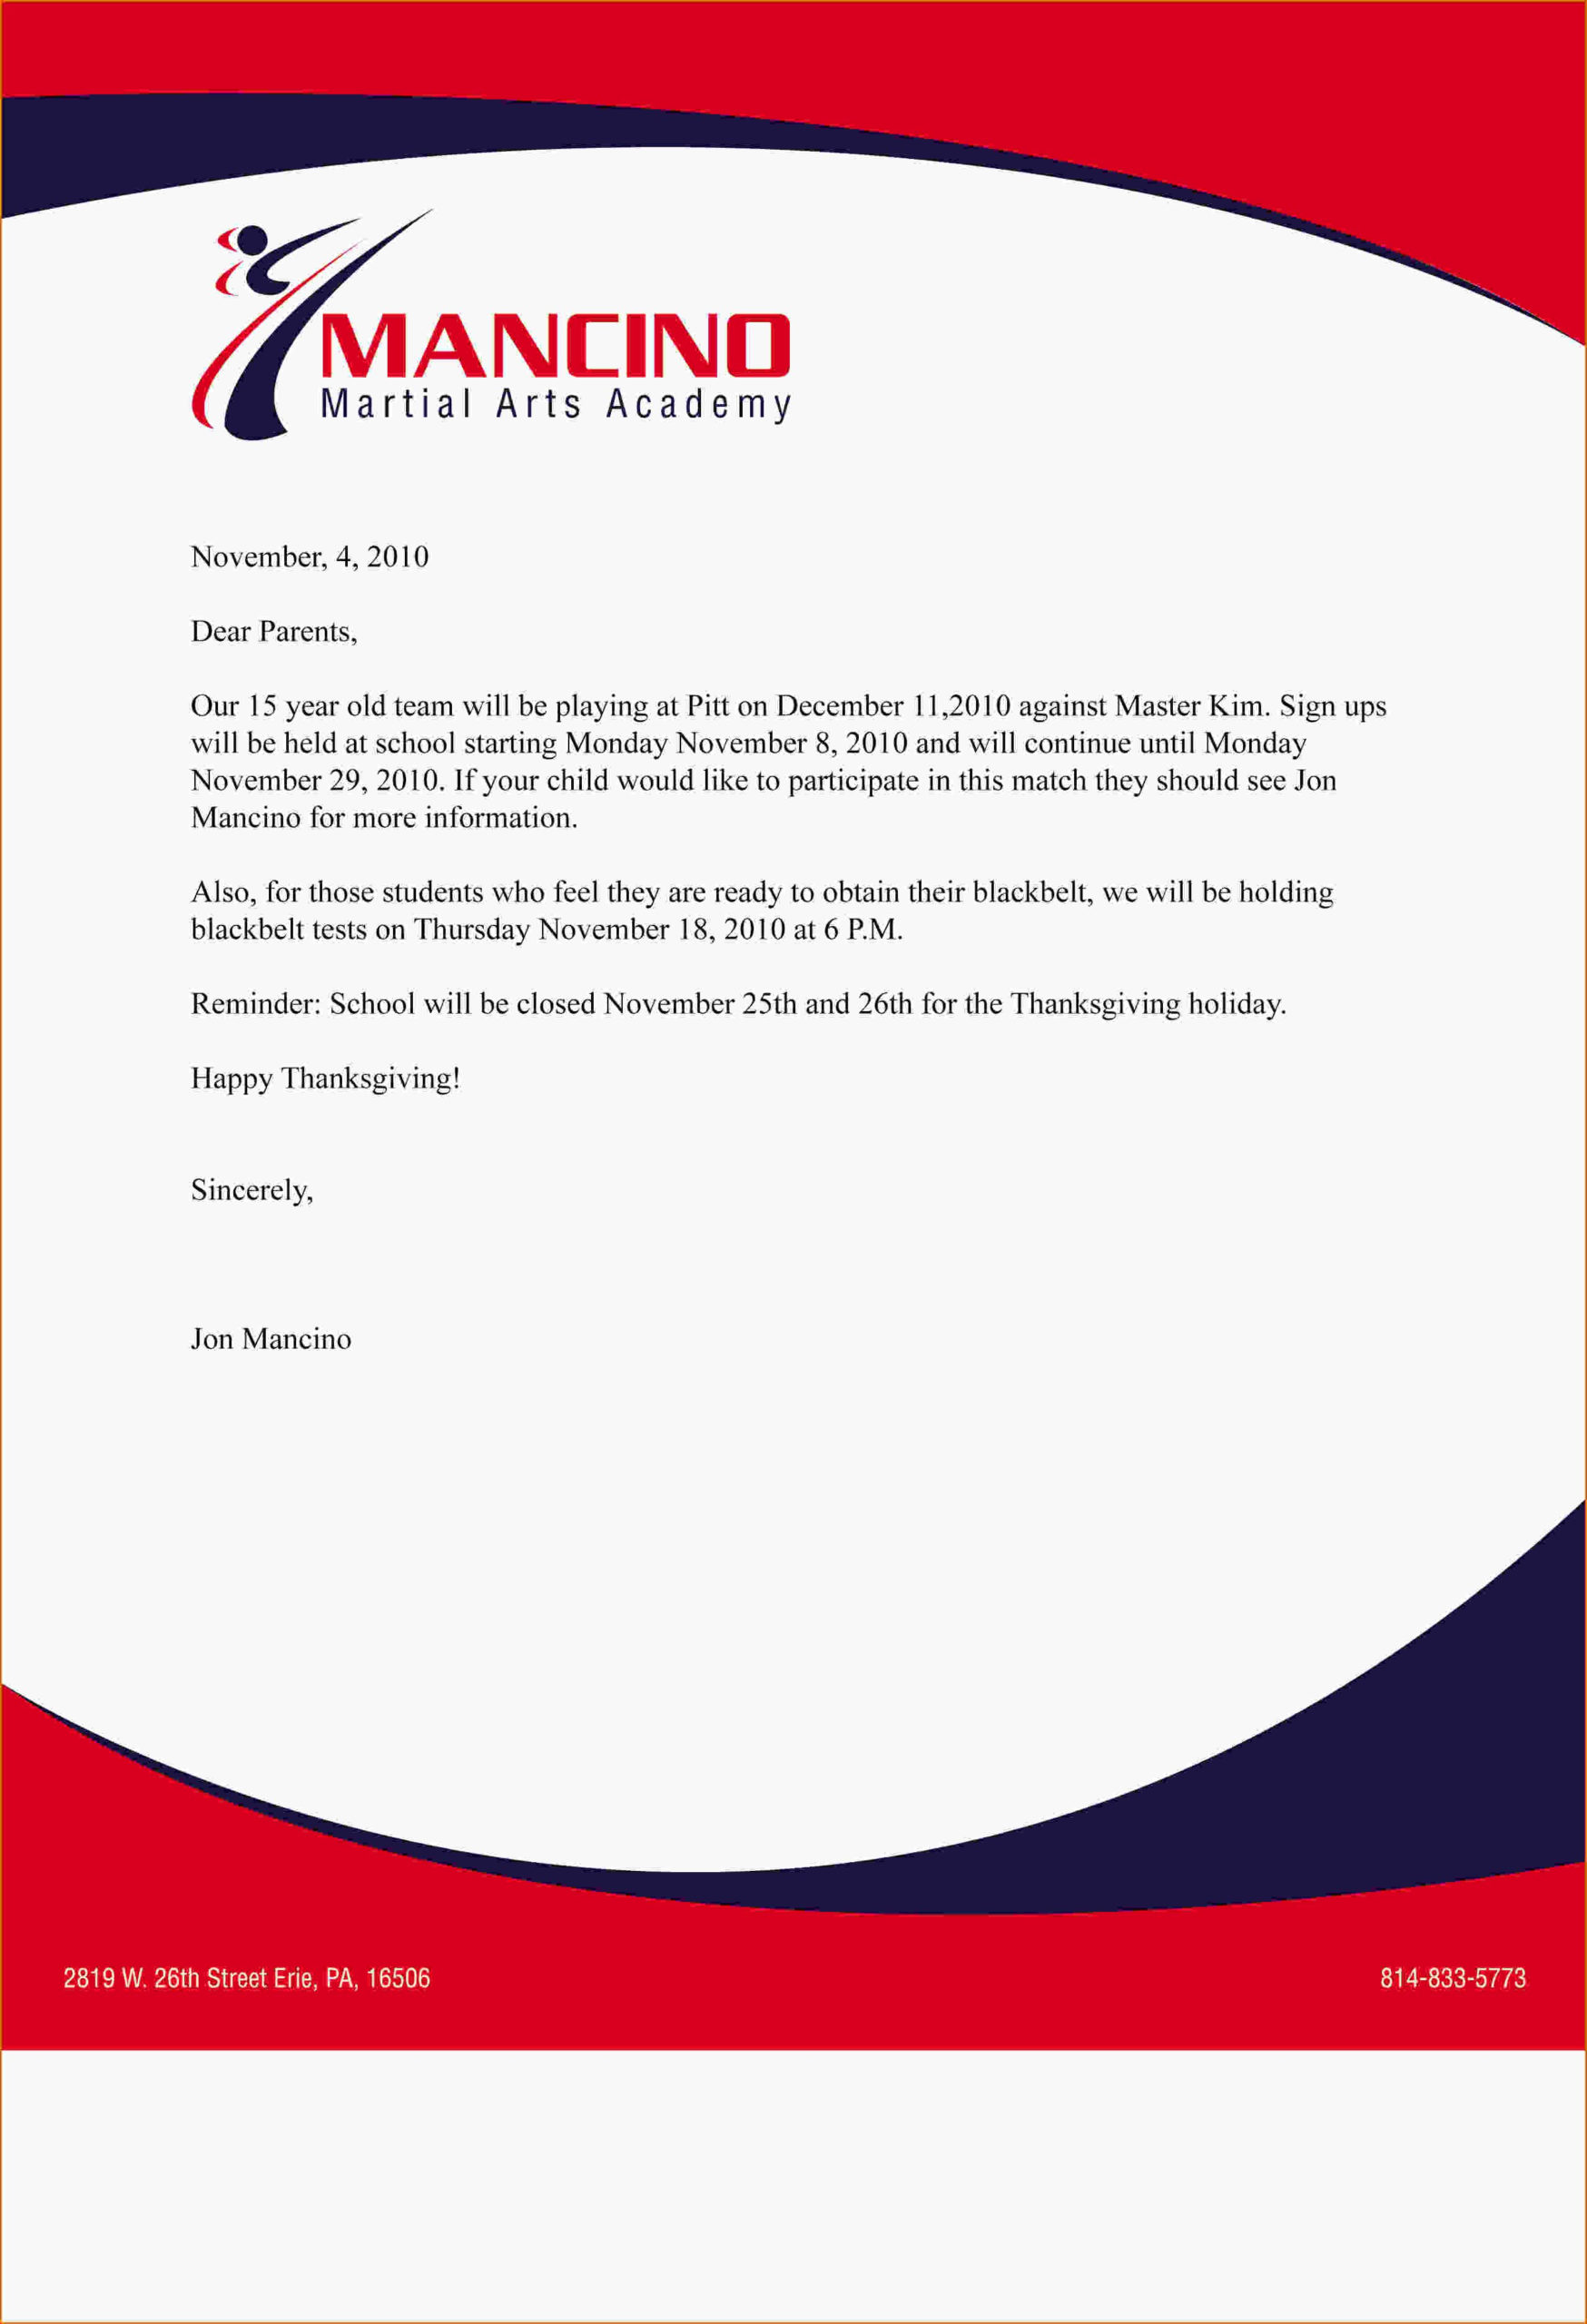 Company Letterhead Example 4 jpg Business Letter Example